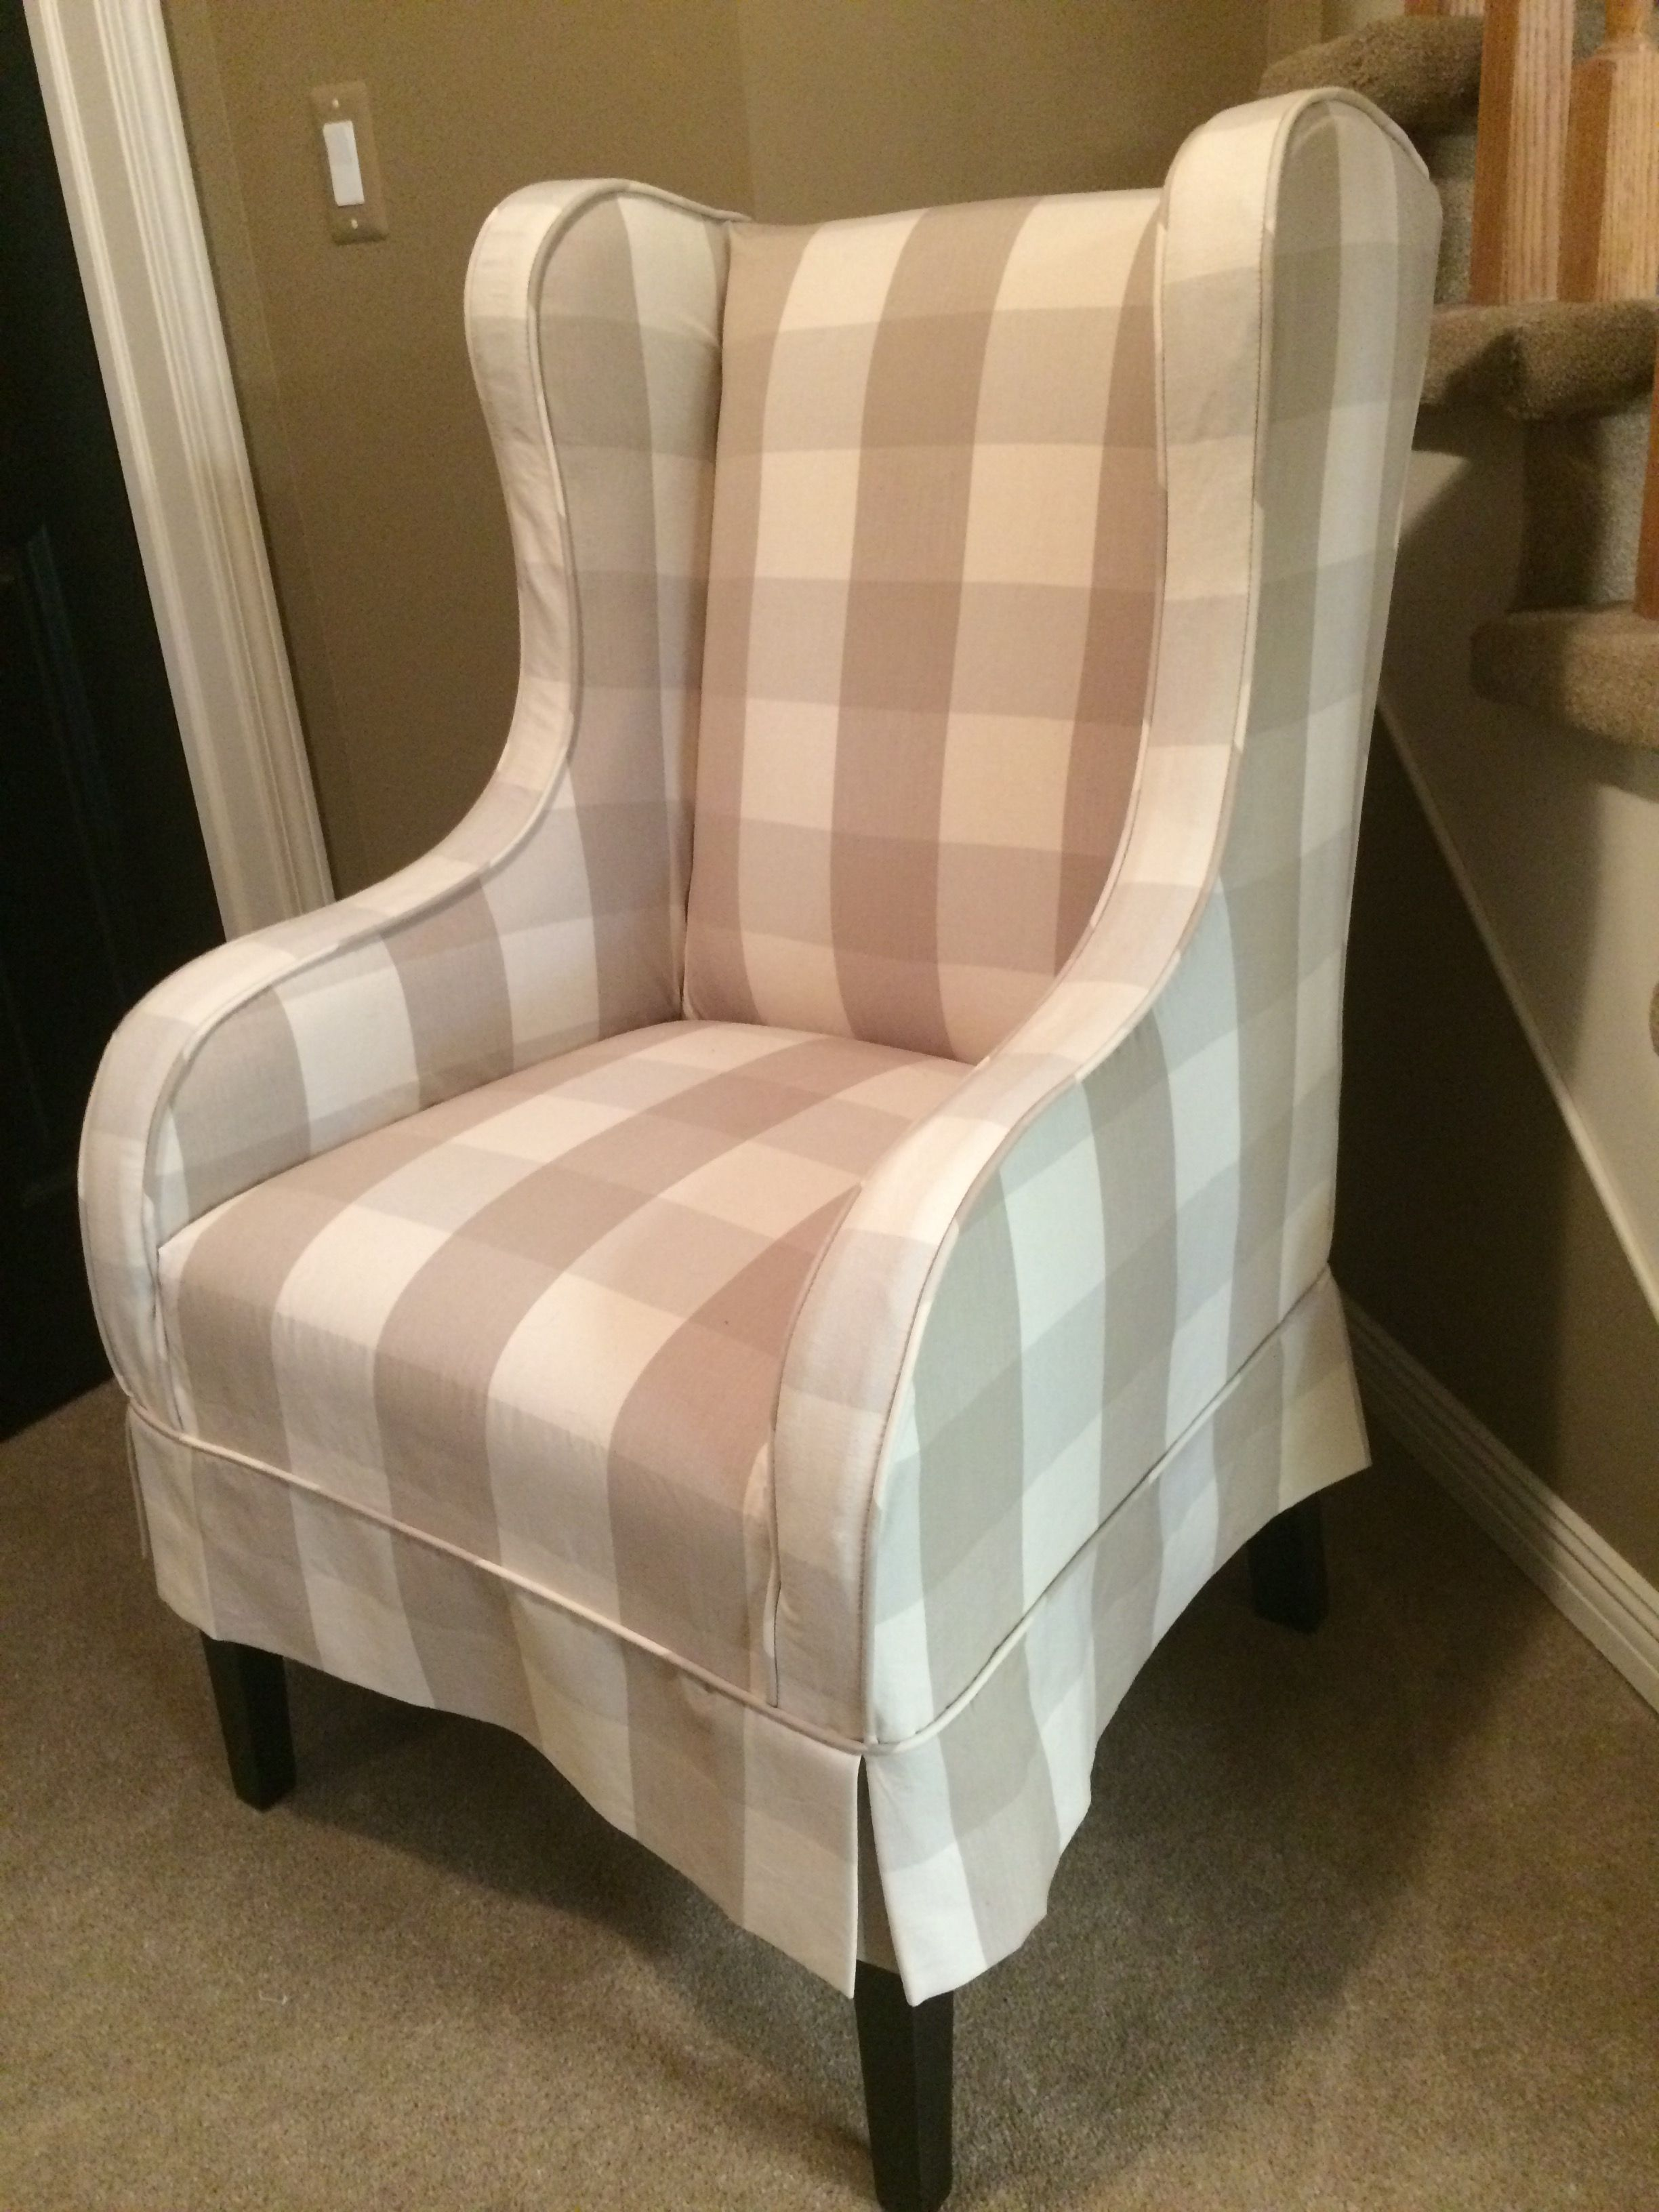 Fireside Muslin Wrap Wingback Chair Slipcovered In A Tan Buffalo